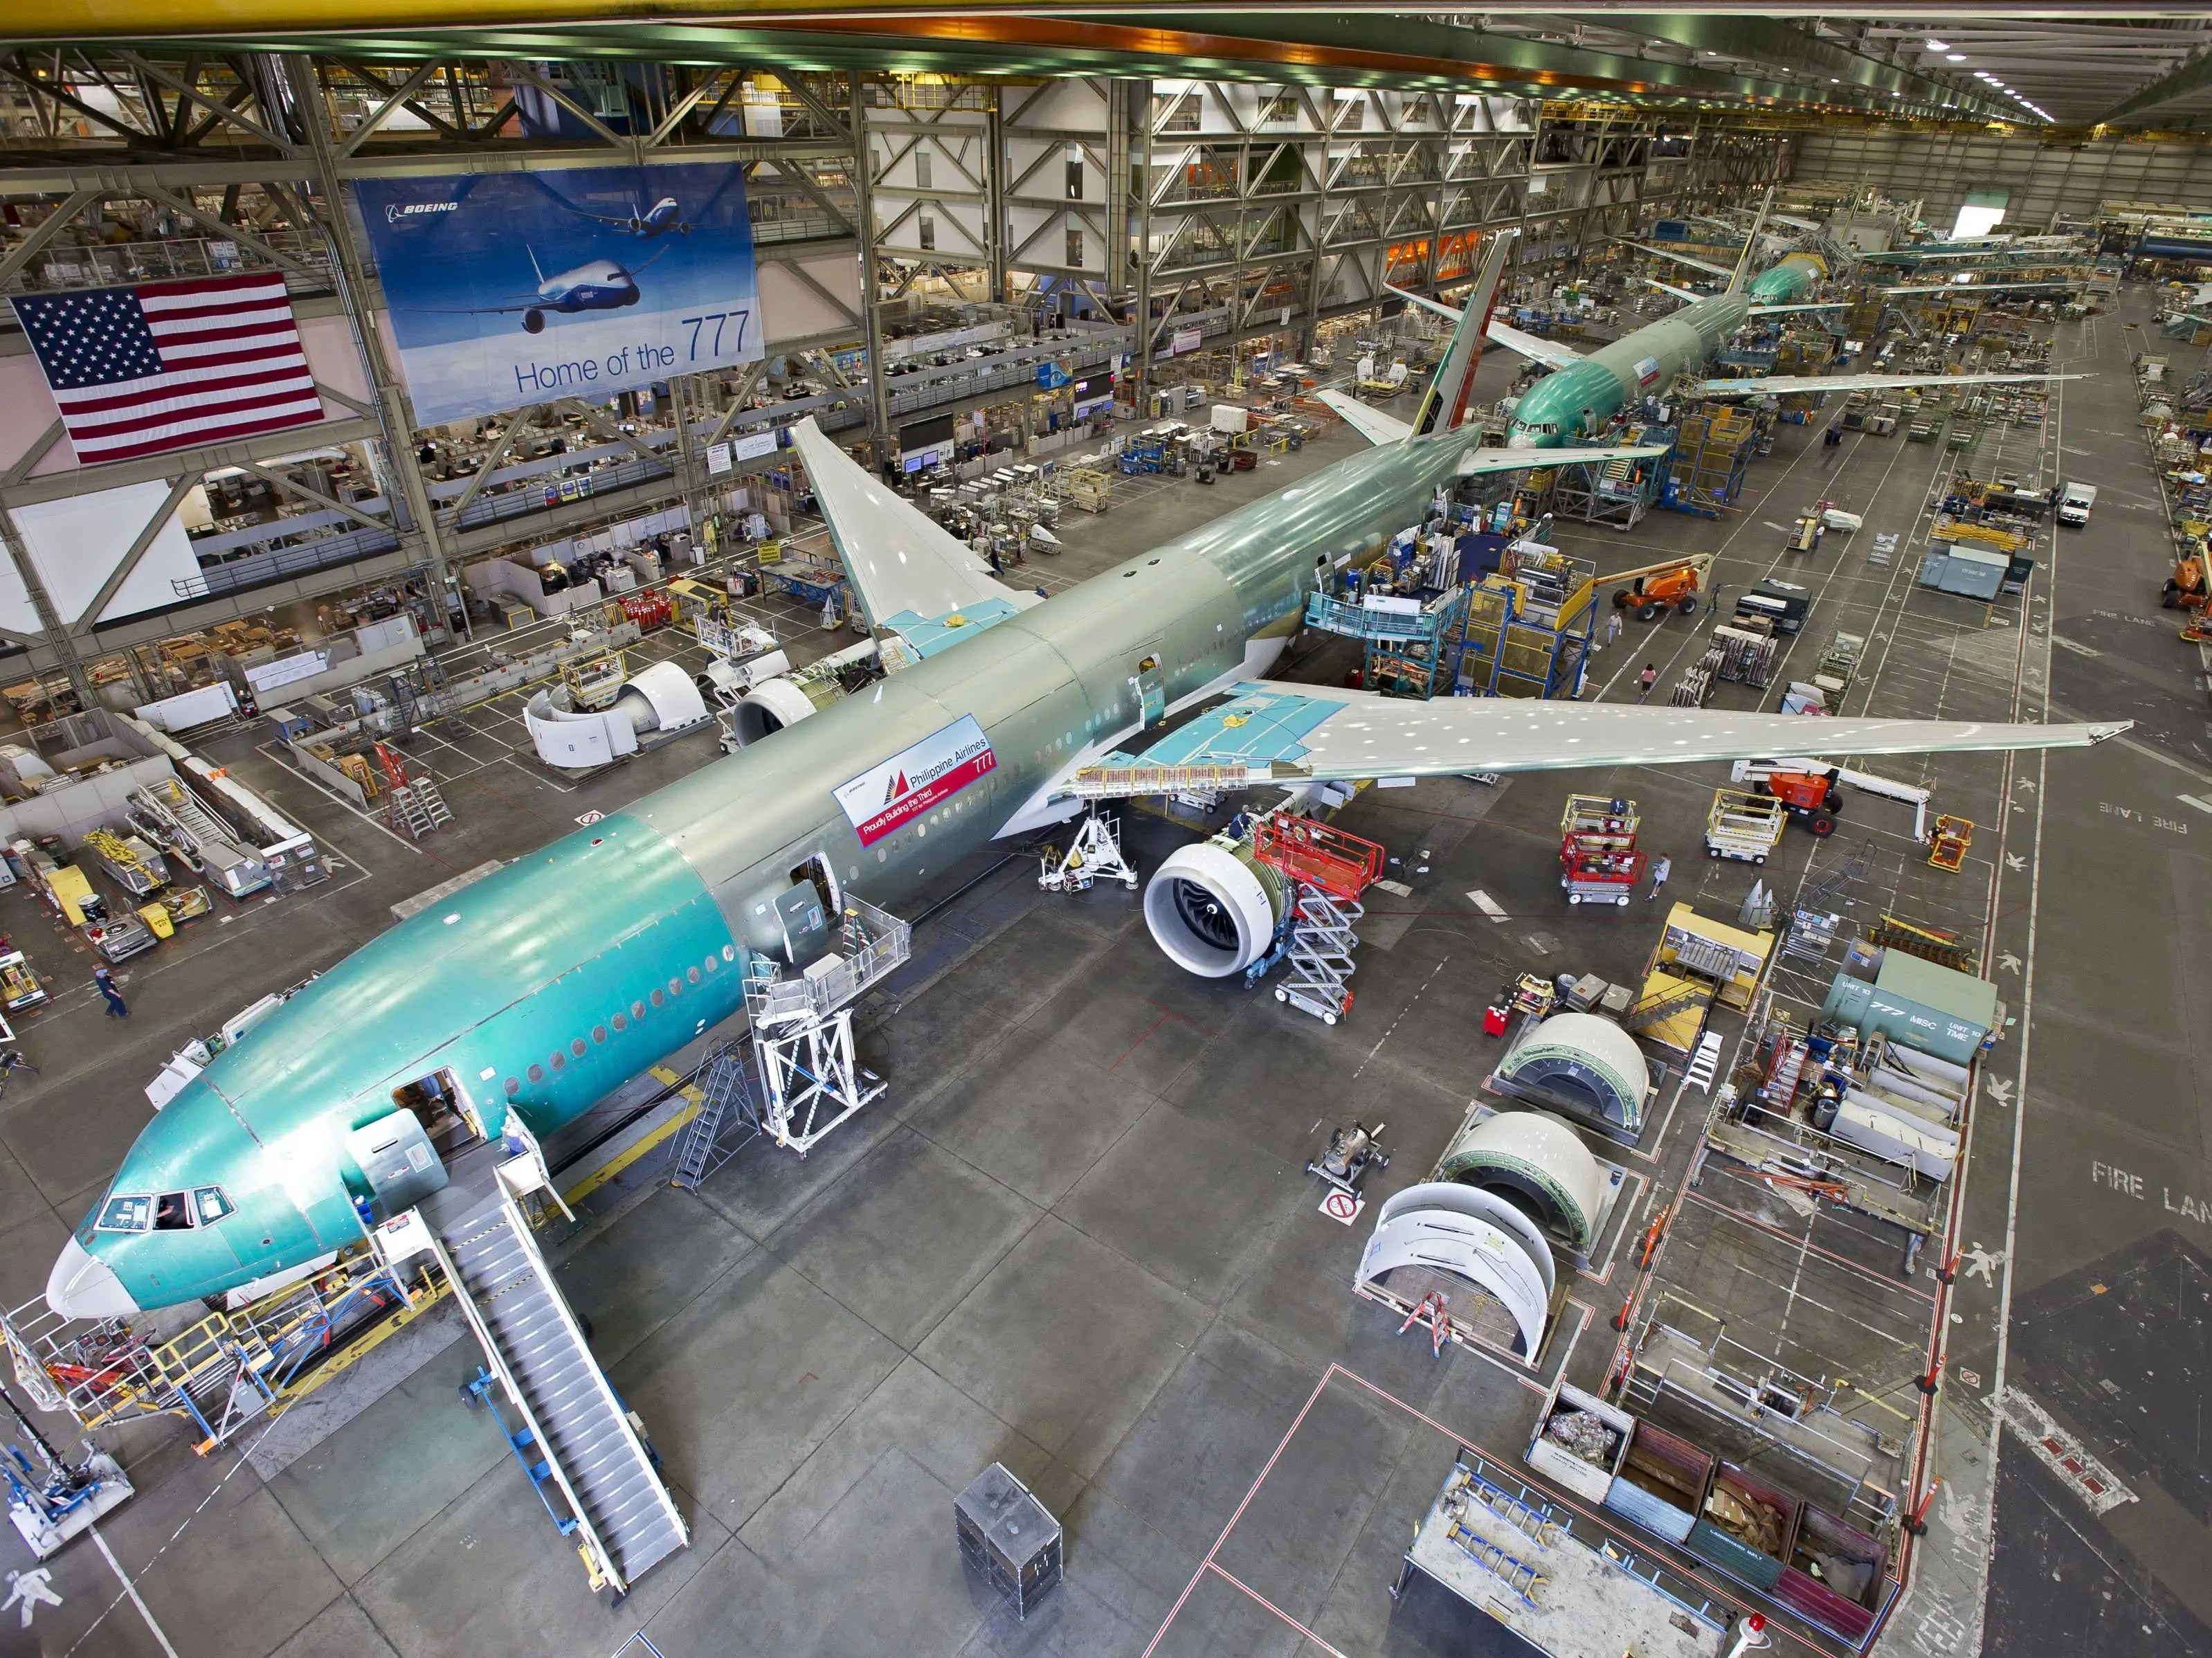 https://i1.wp.com/static5.businessinsider.com/image/50896e4eeab8eaa718000003-2400/boeing-777-production-assembly-factory-3.jpg